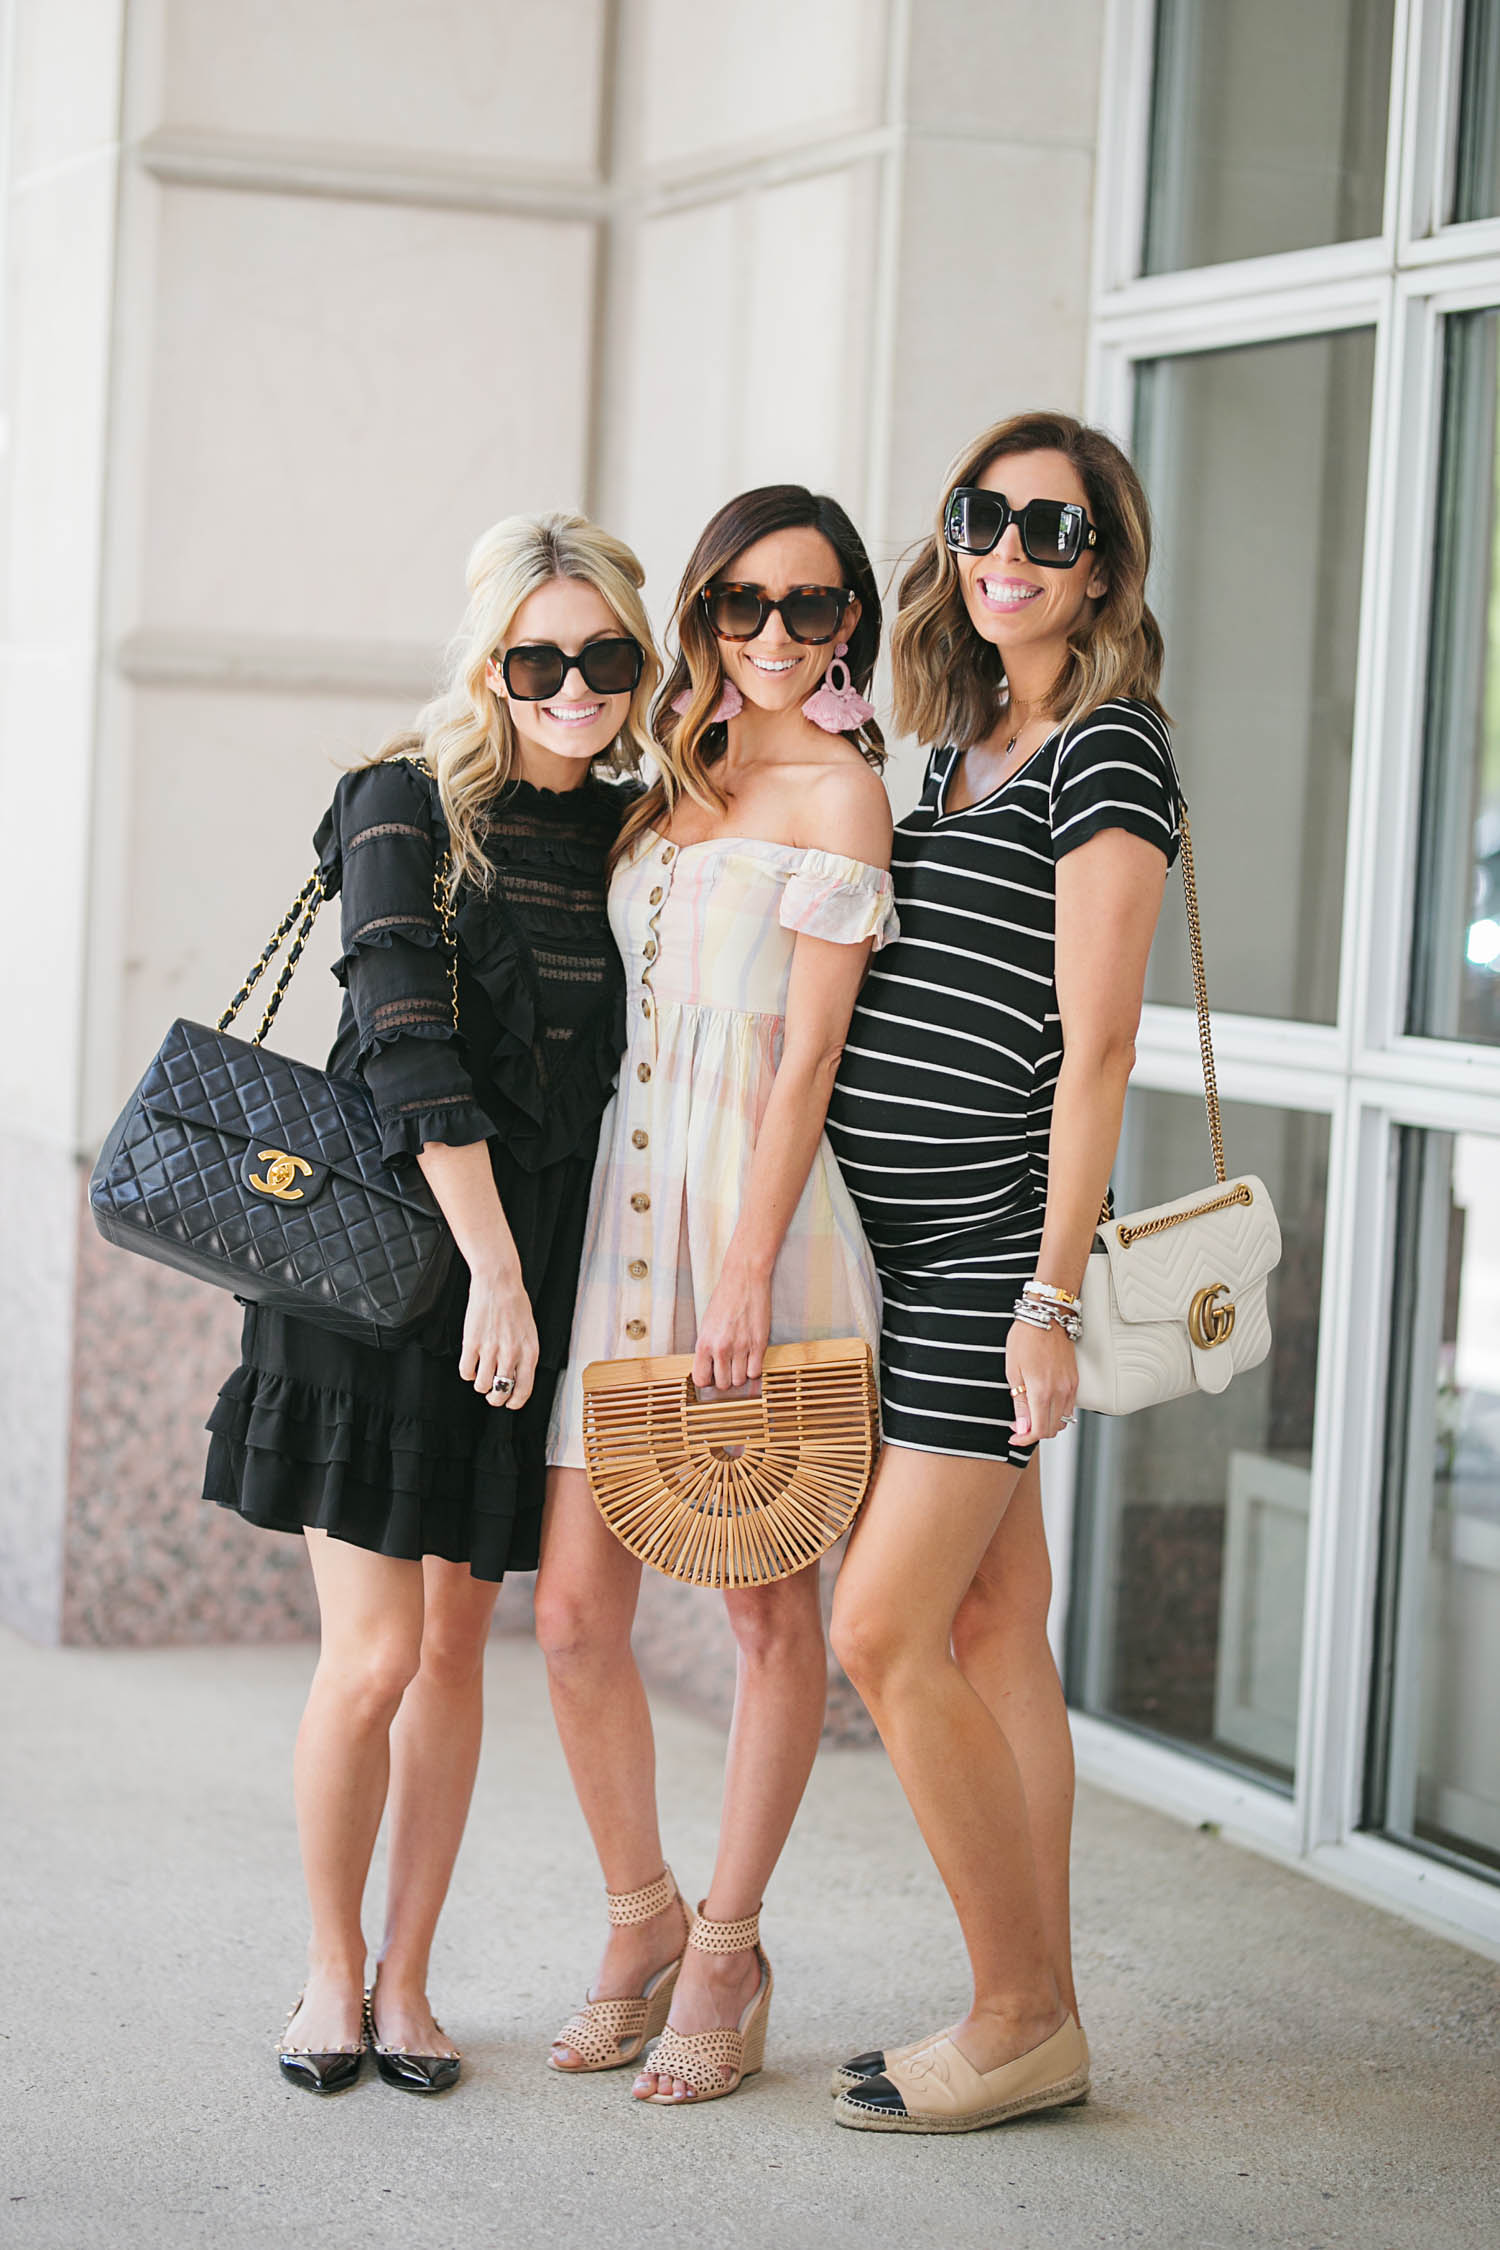 Friends, Plaid Dress, Urban Outffiters, rewardStyle Conference, Statement Earrings, Baublebar, Cult Gaia, Gucci Sunglasses